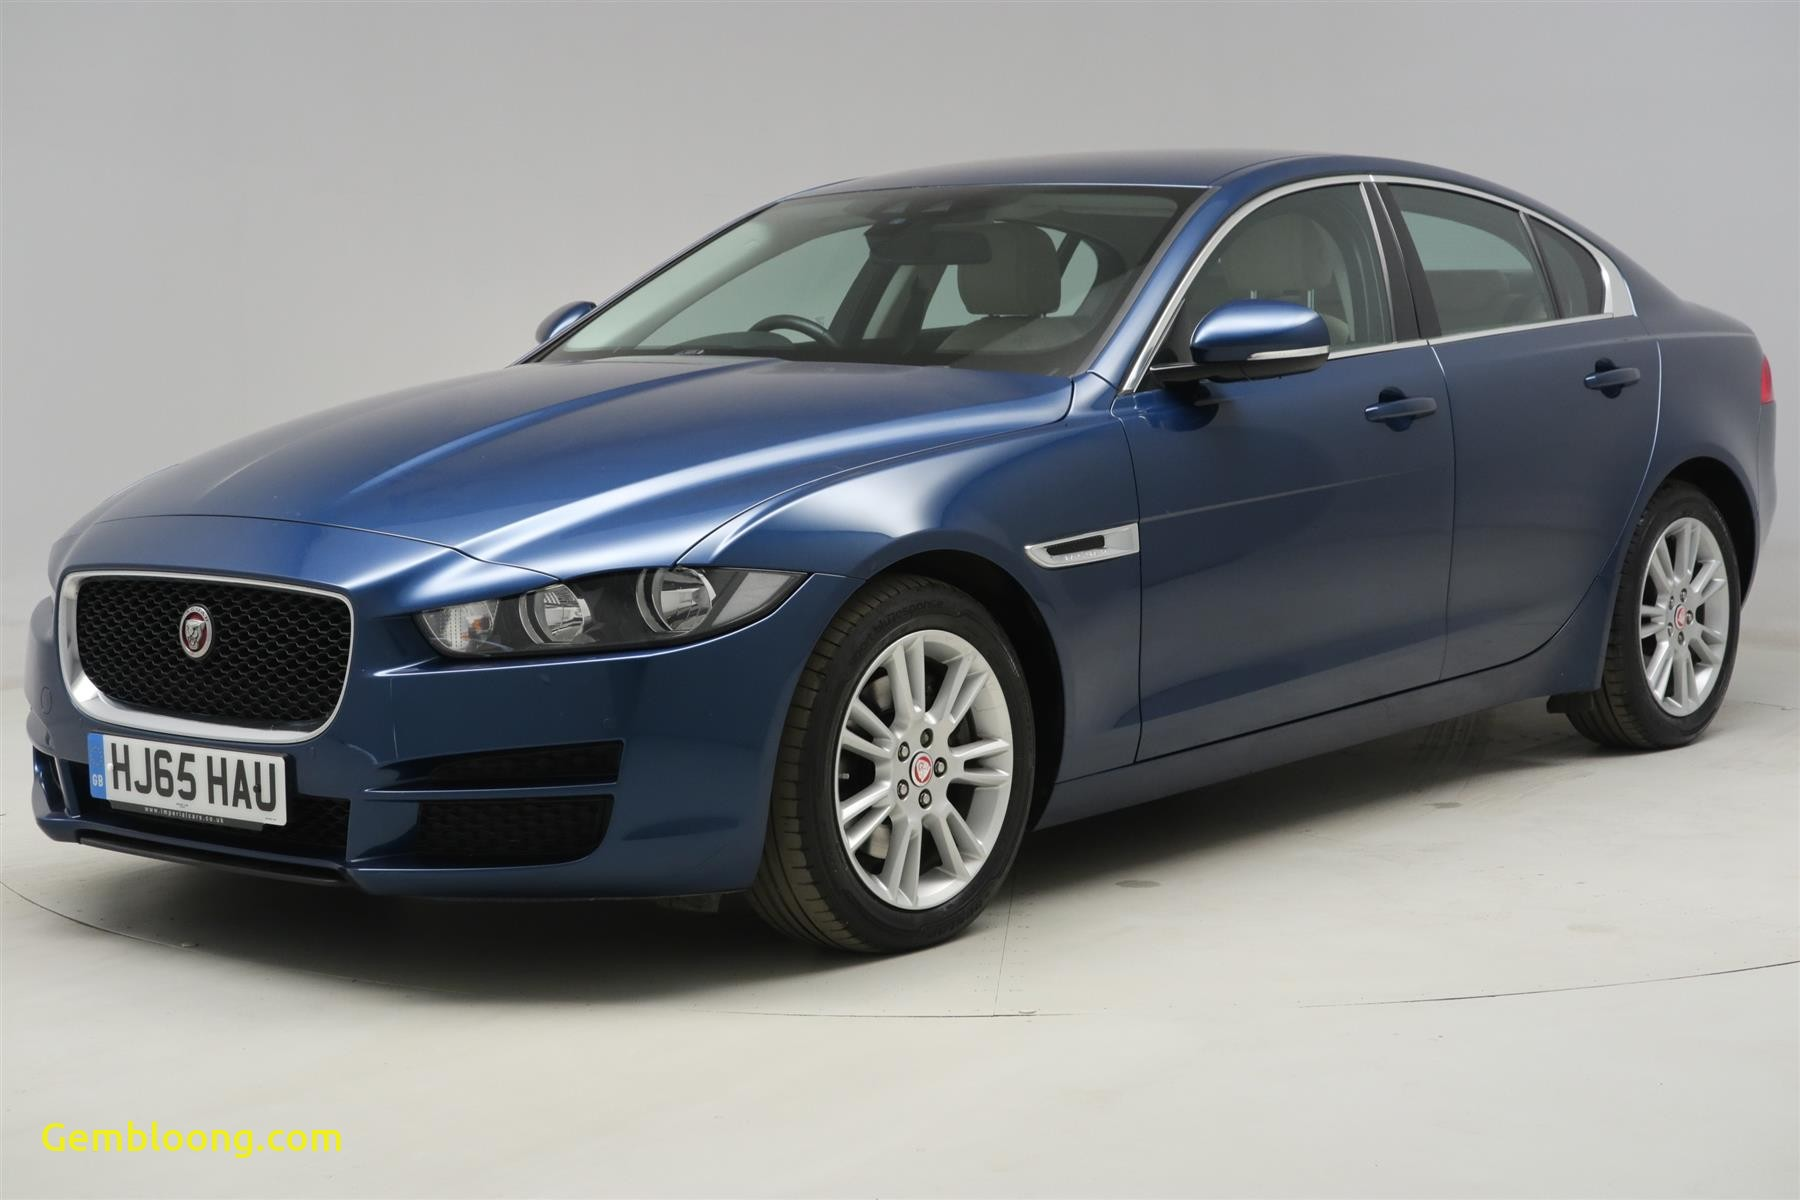 Where to Look for Used Cars Inspirational Used 2016 Jaguar Xe 2 0d [180] Prestige 4dr Auto Active